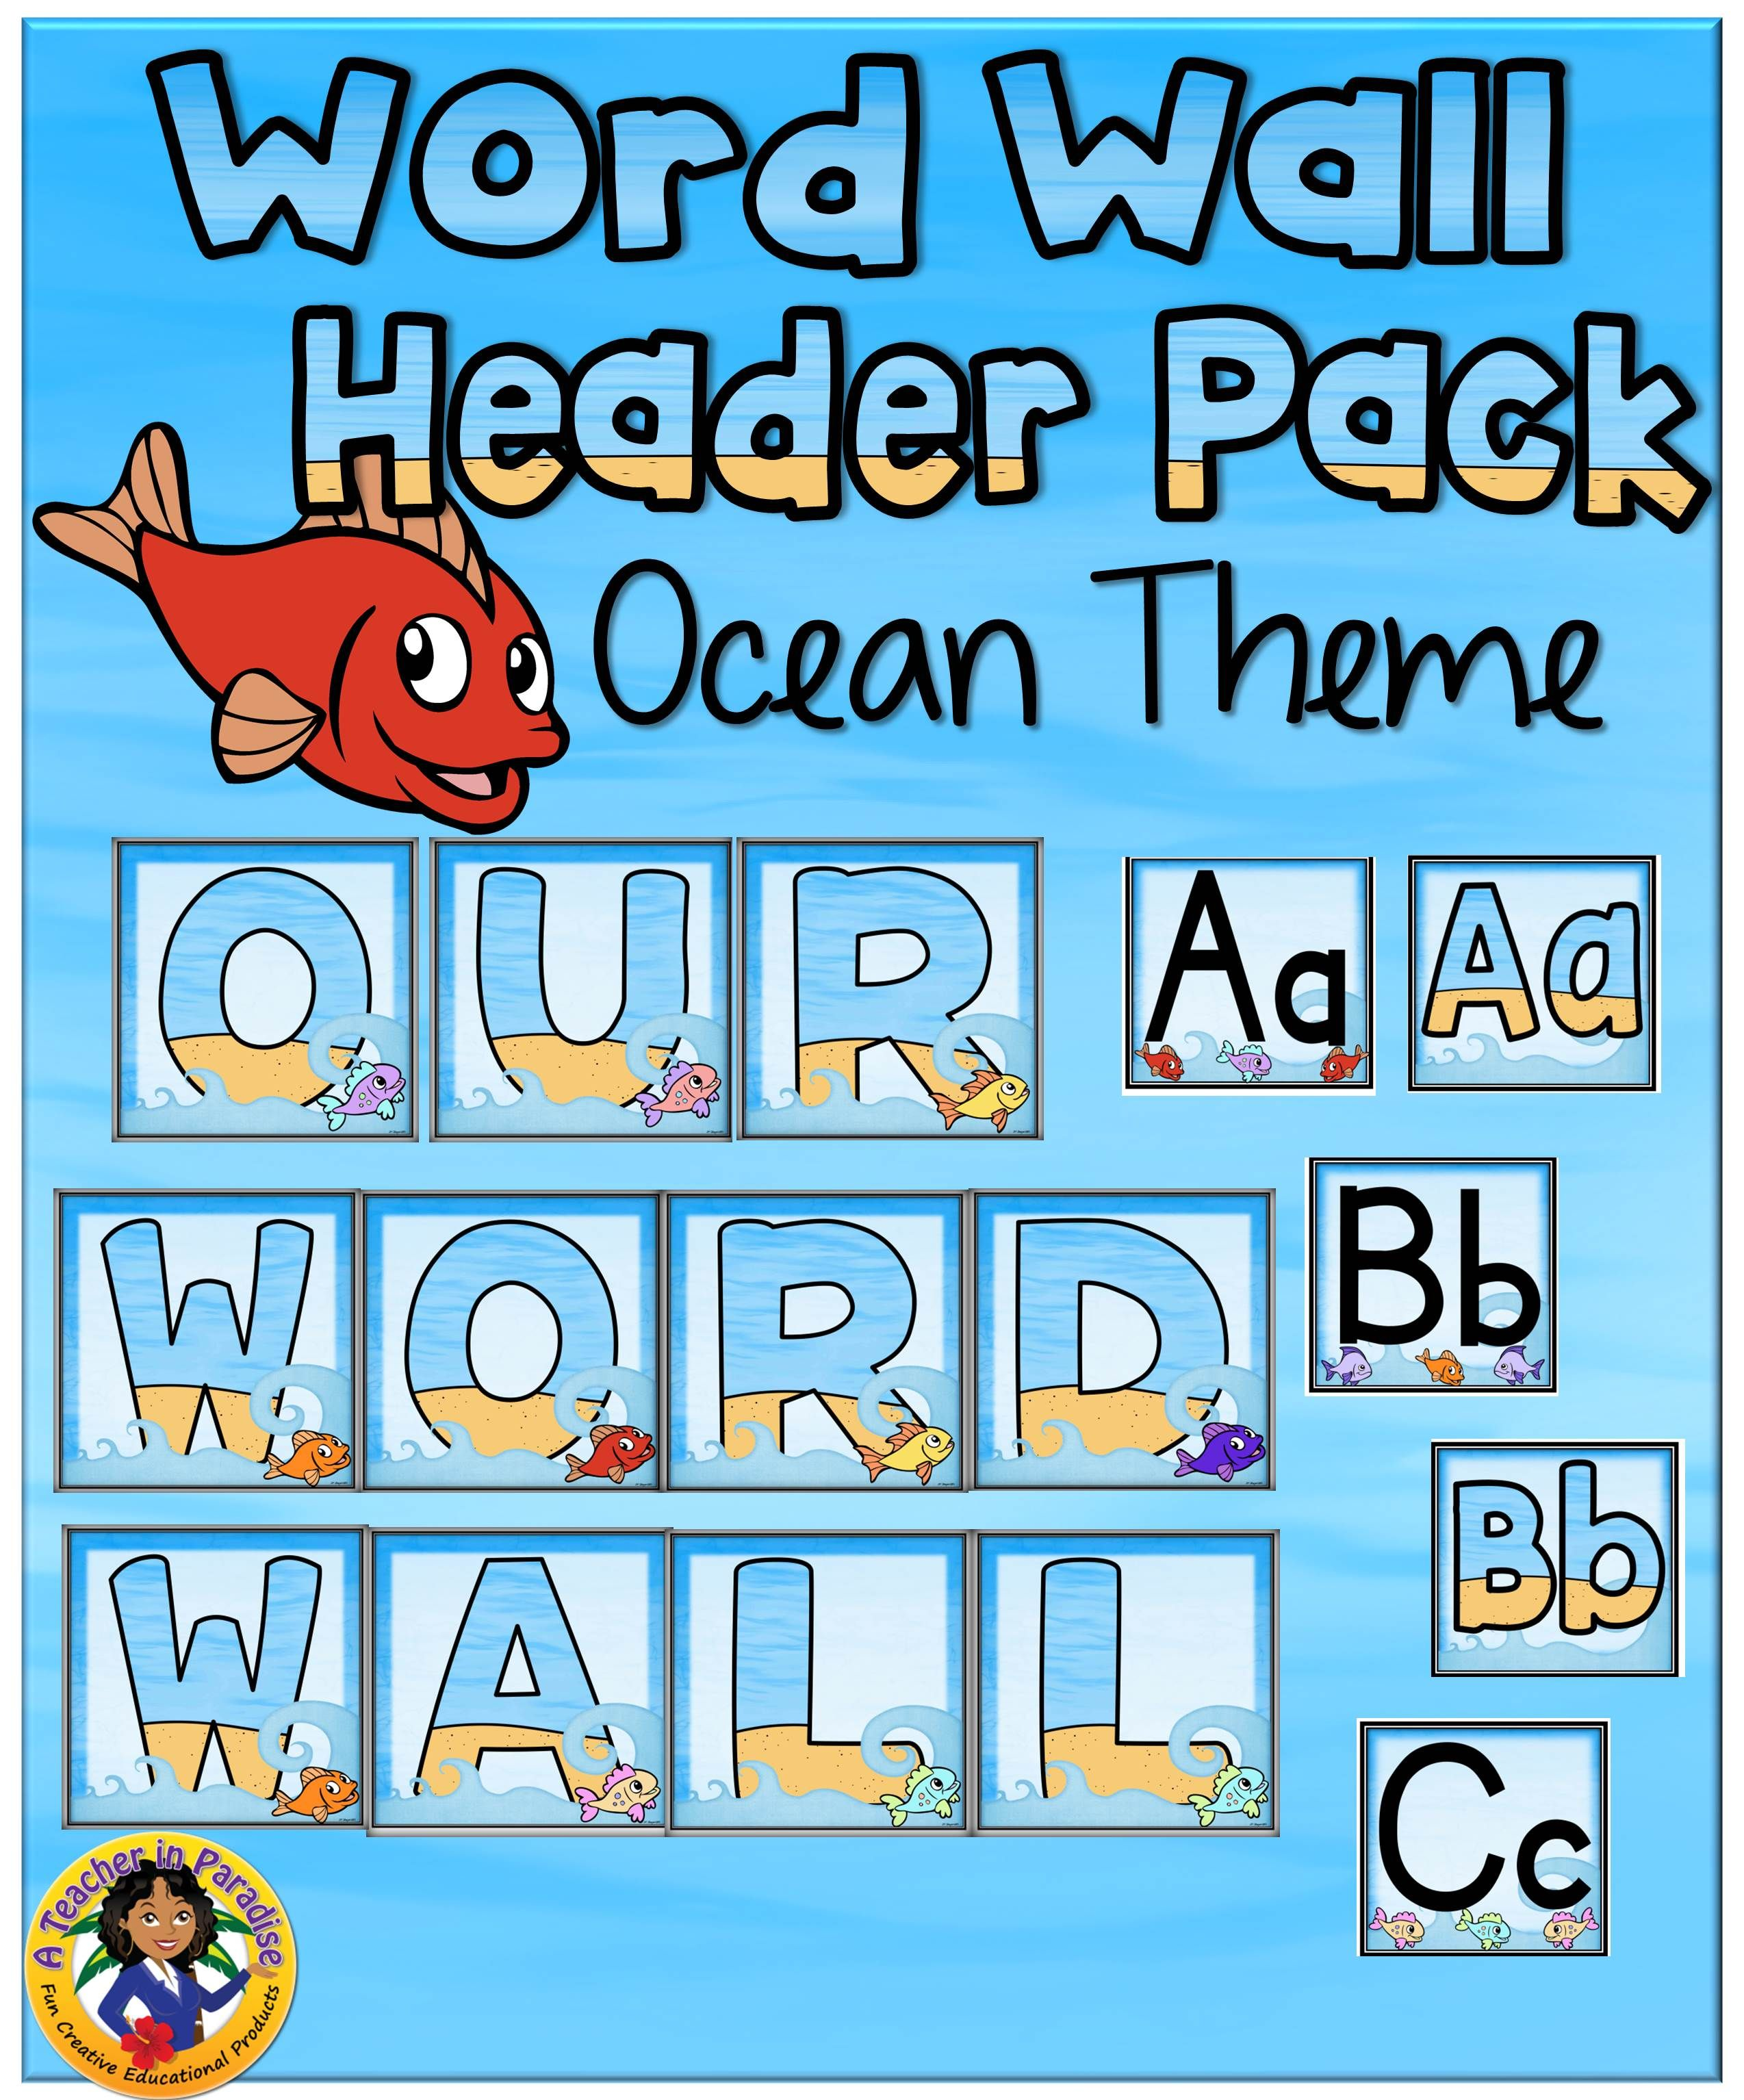 Word Wall Letters Delectable Ocean Theme Word Wall Banner And Headers Set  Word Wall Letters Decorating Inspiration